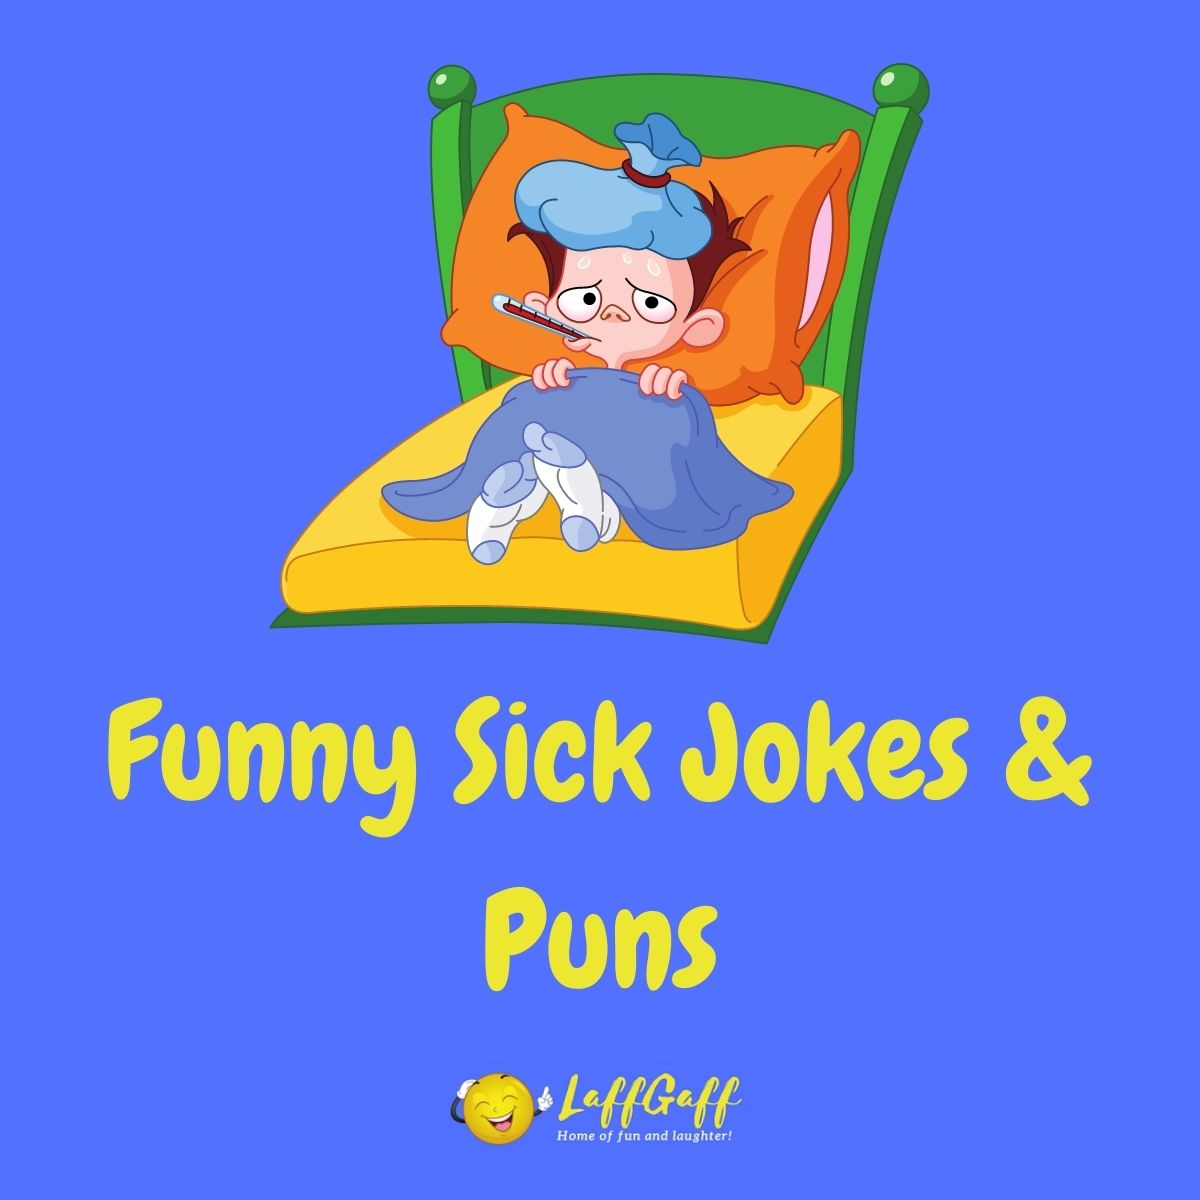 Featured image for a page of sick jokes and puns.